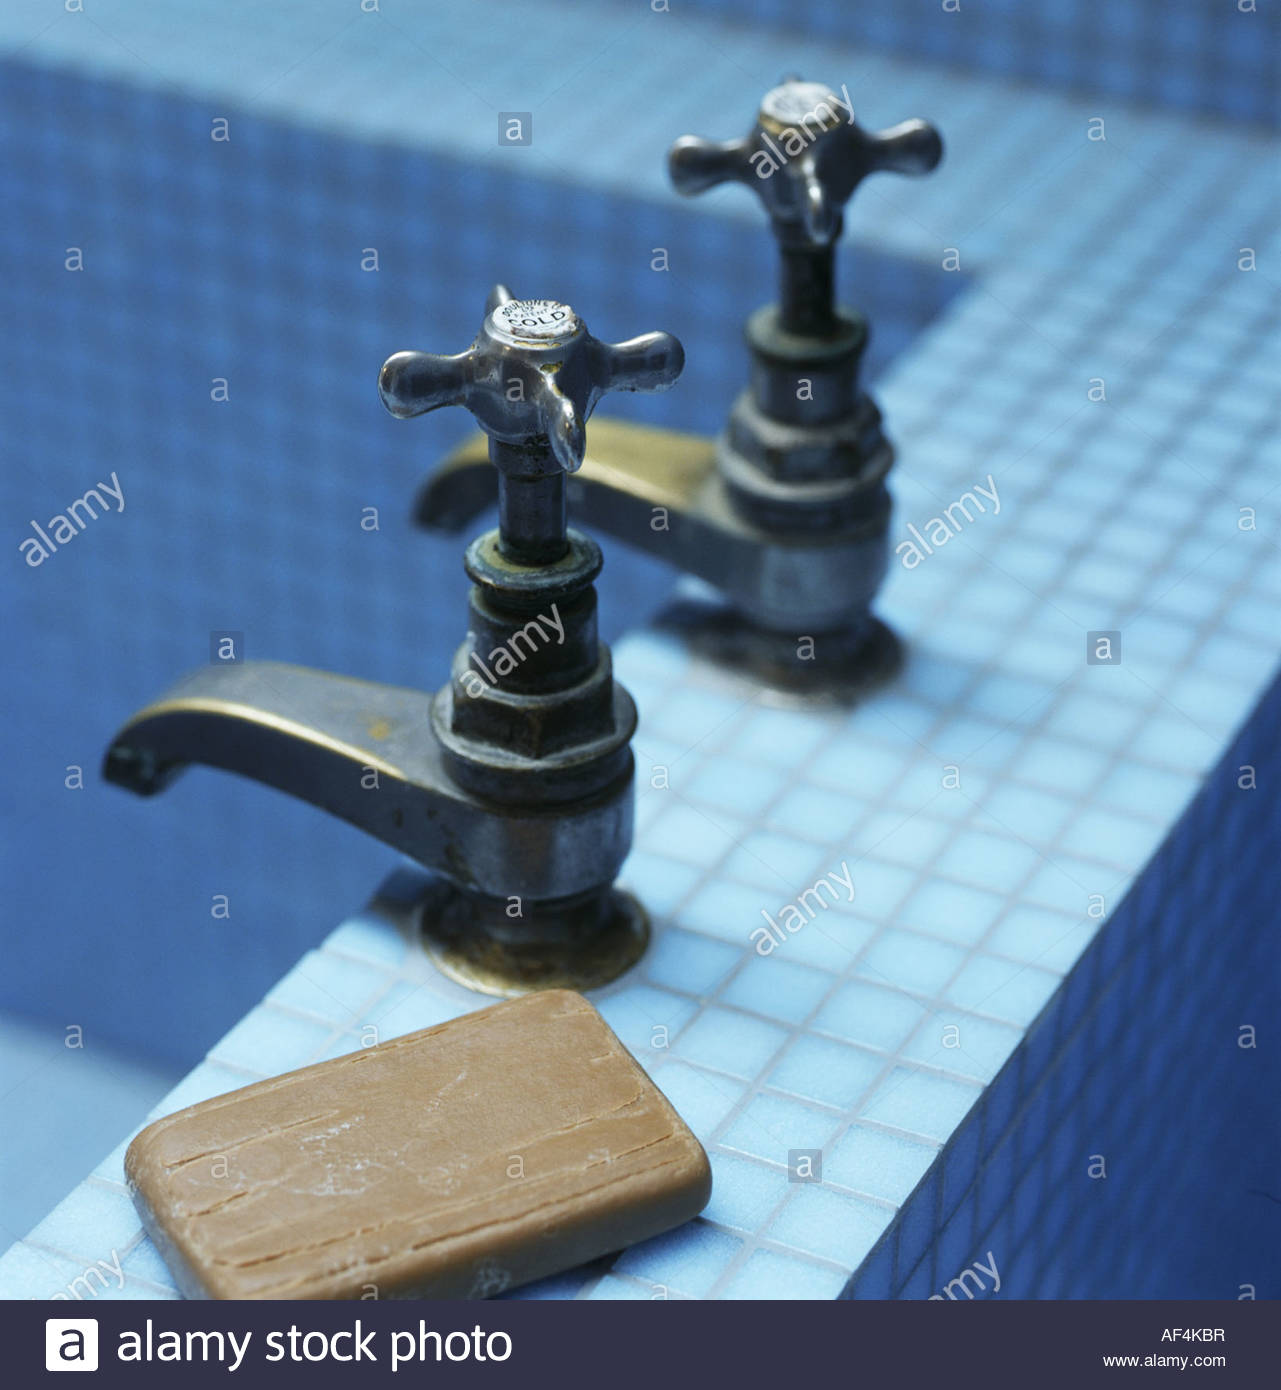 Two taps with soap on edge of a bath-tub Stock Photo: 13830010 - Alamy